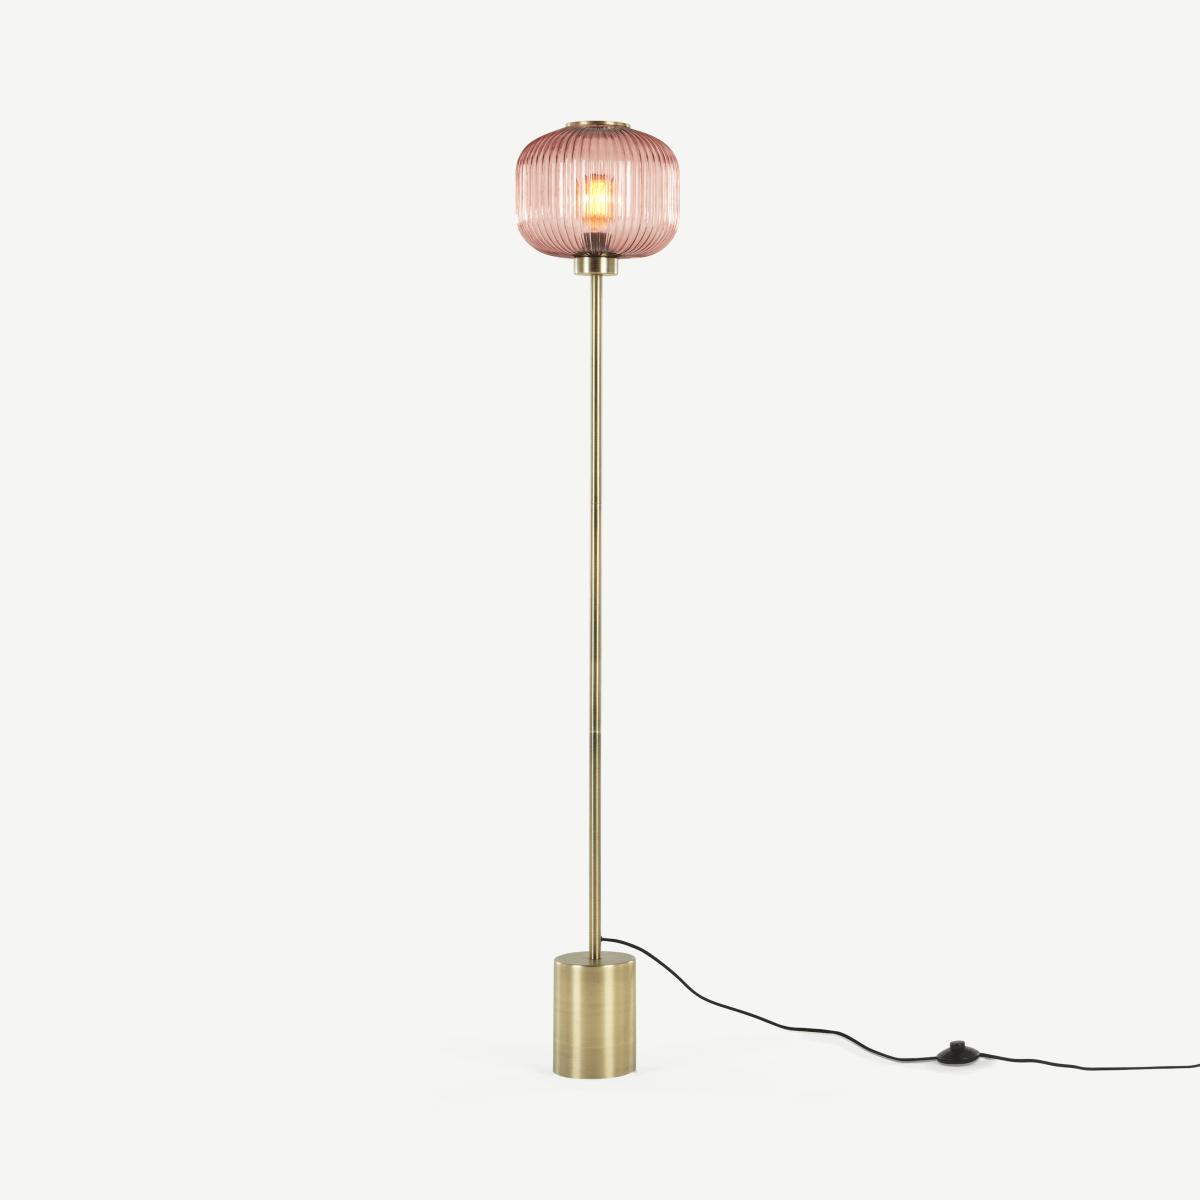 Briz Textured Glass Floor Lamp, Antique Brass & Pink